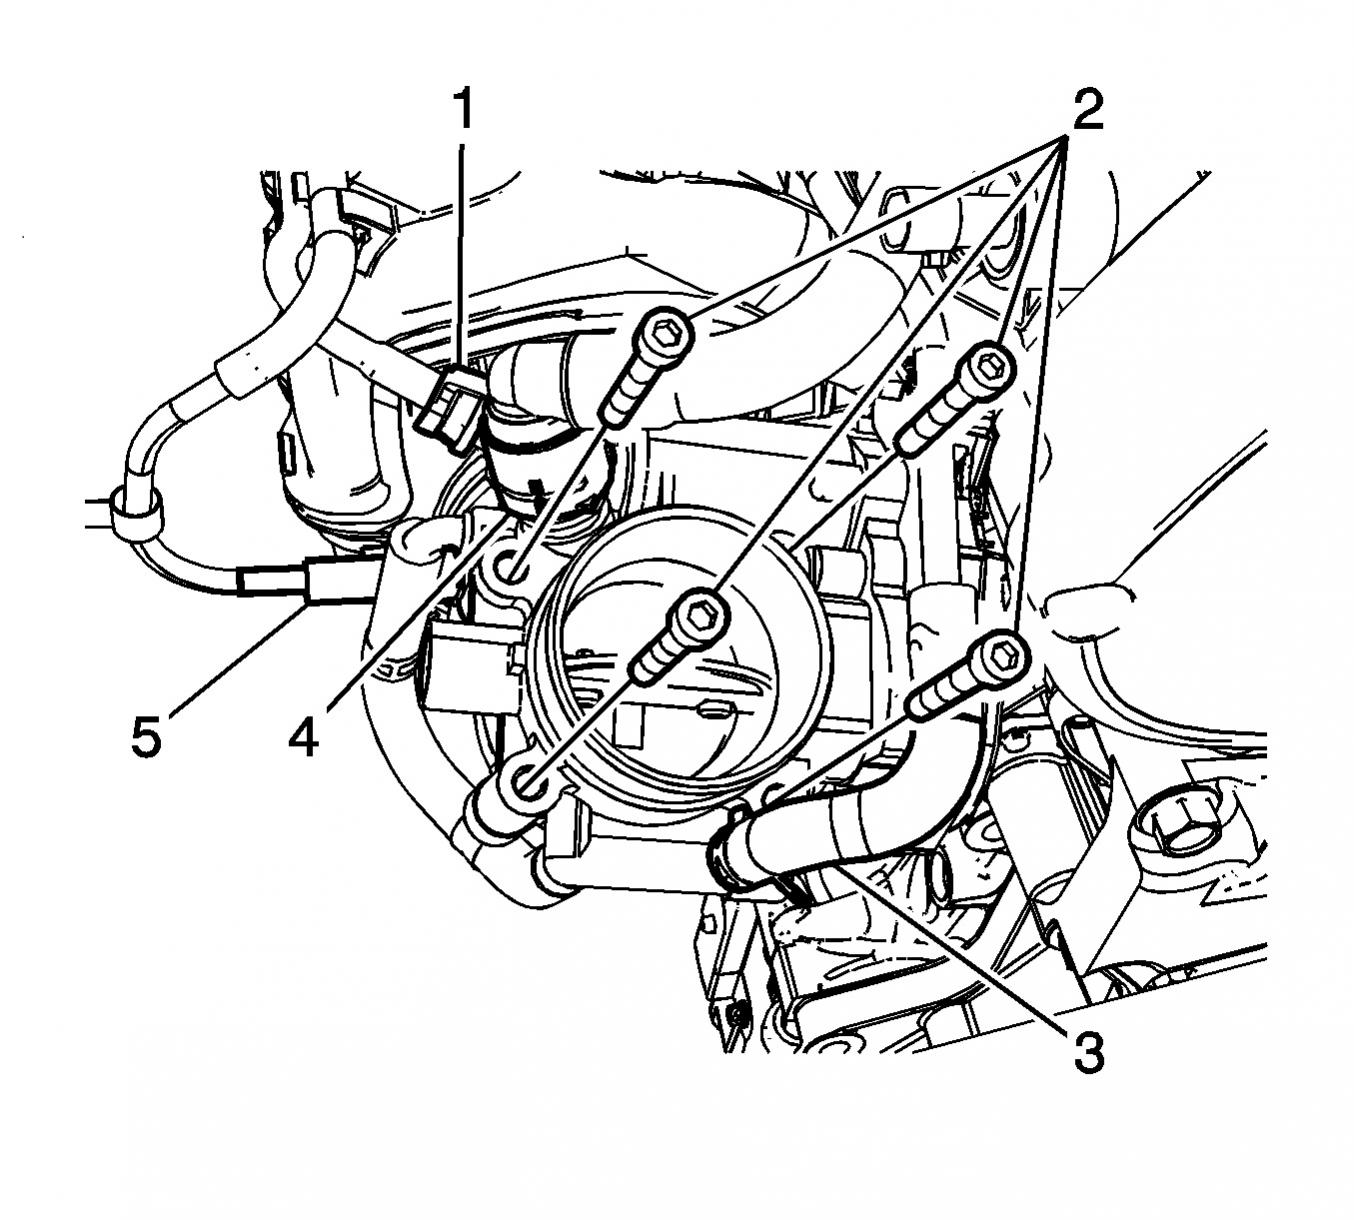 2004 Chevrolet Aveo Engine Diagram